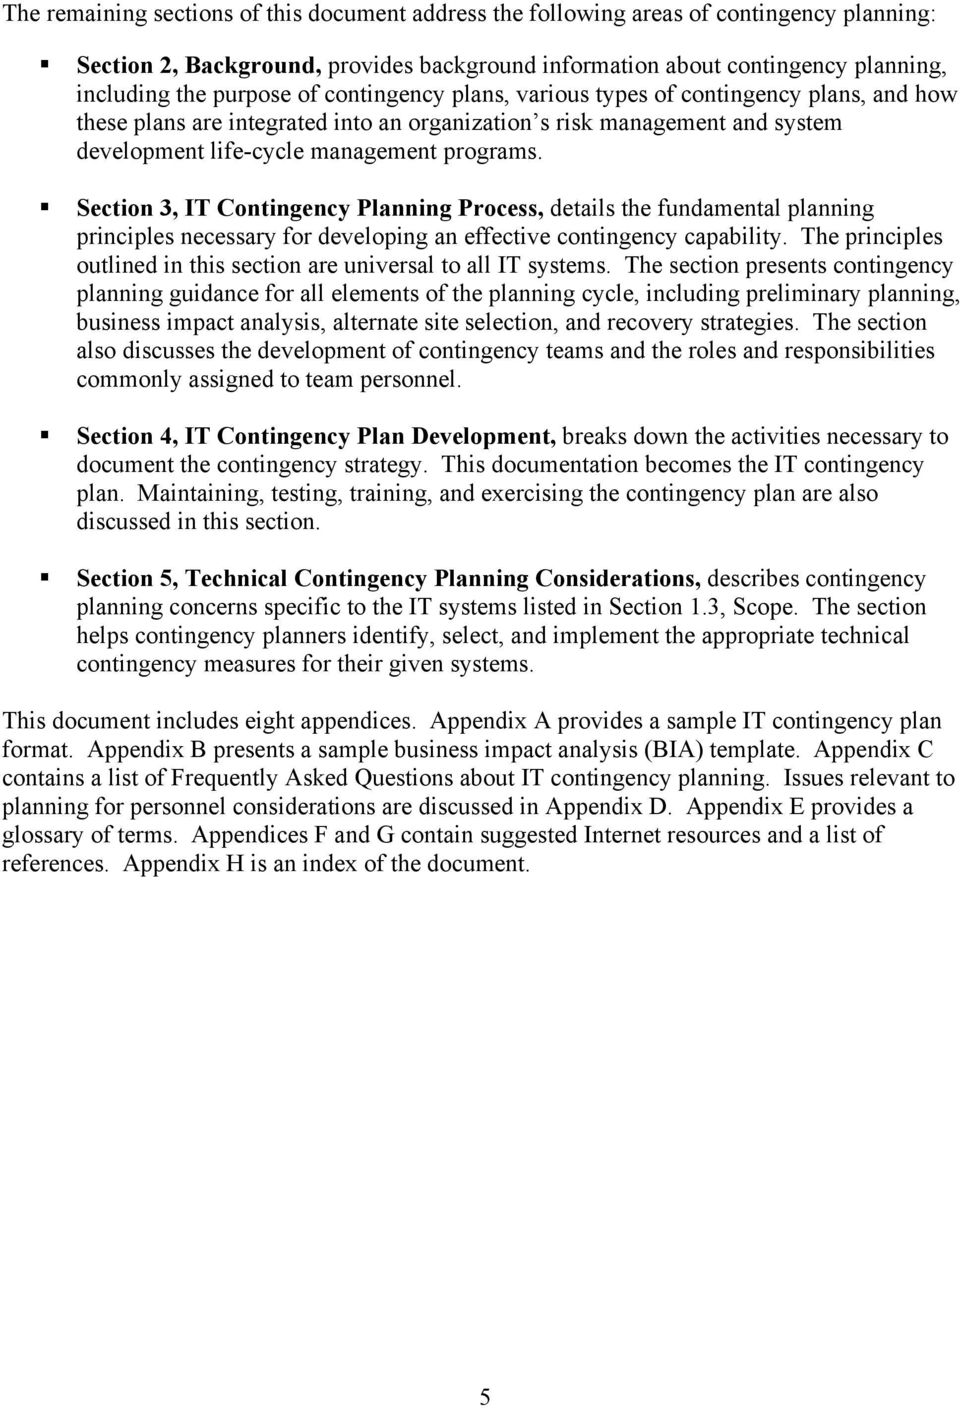 Section 3, IT Contingency Planning Process, details the fundamental planning principles necessary for developing an effective contingency capability.